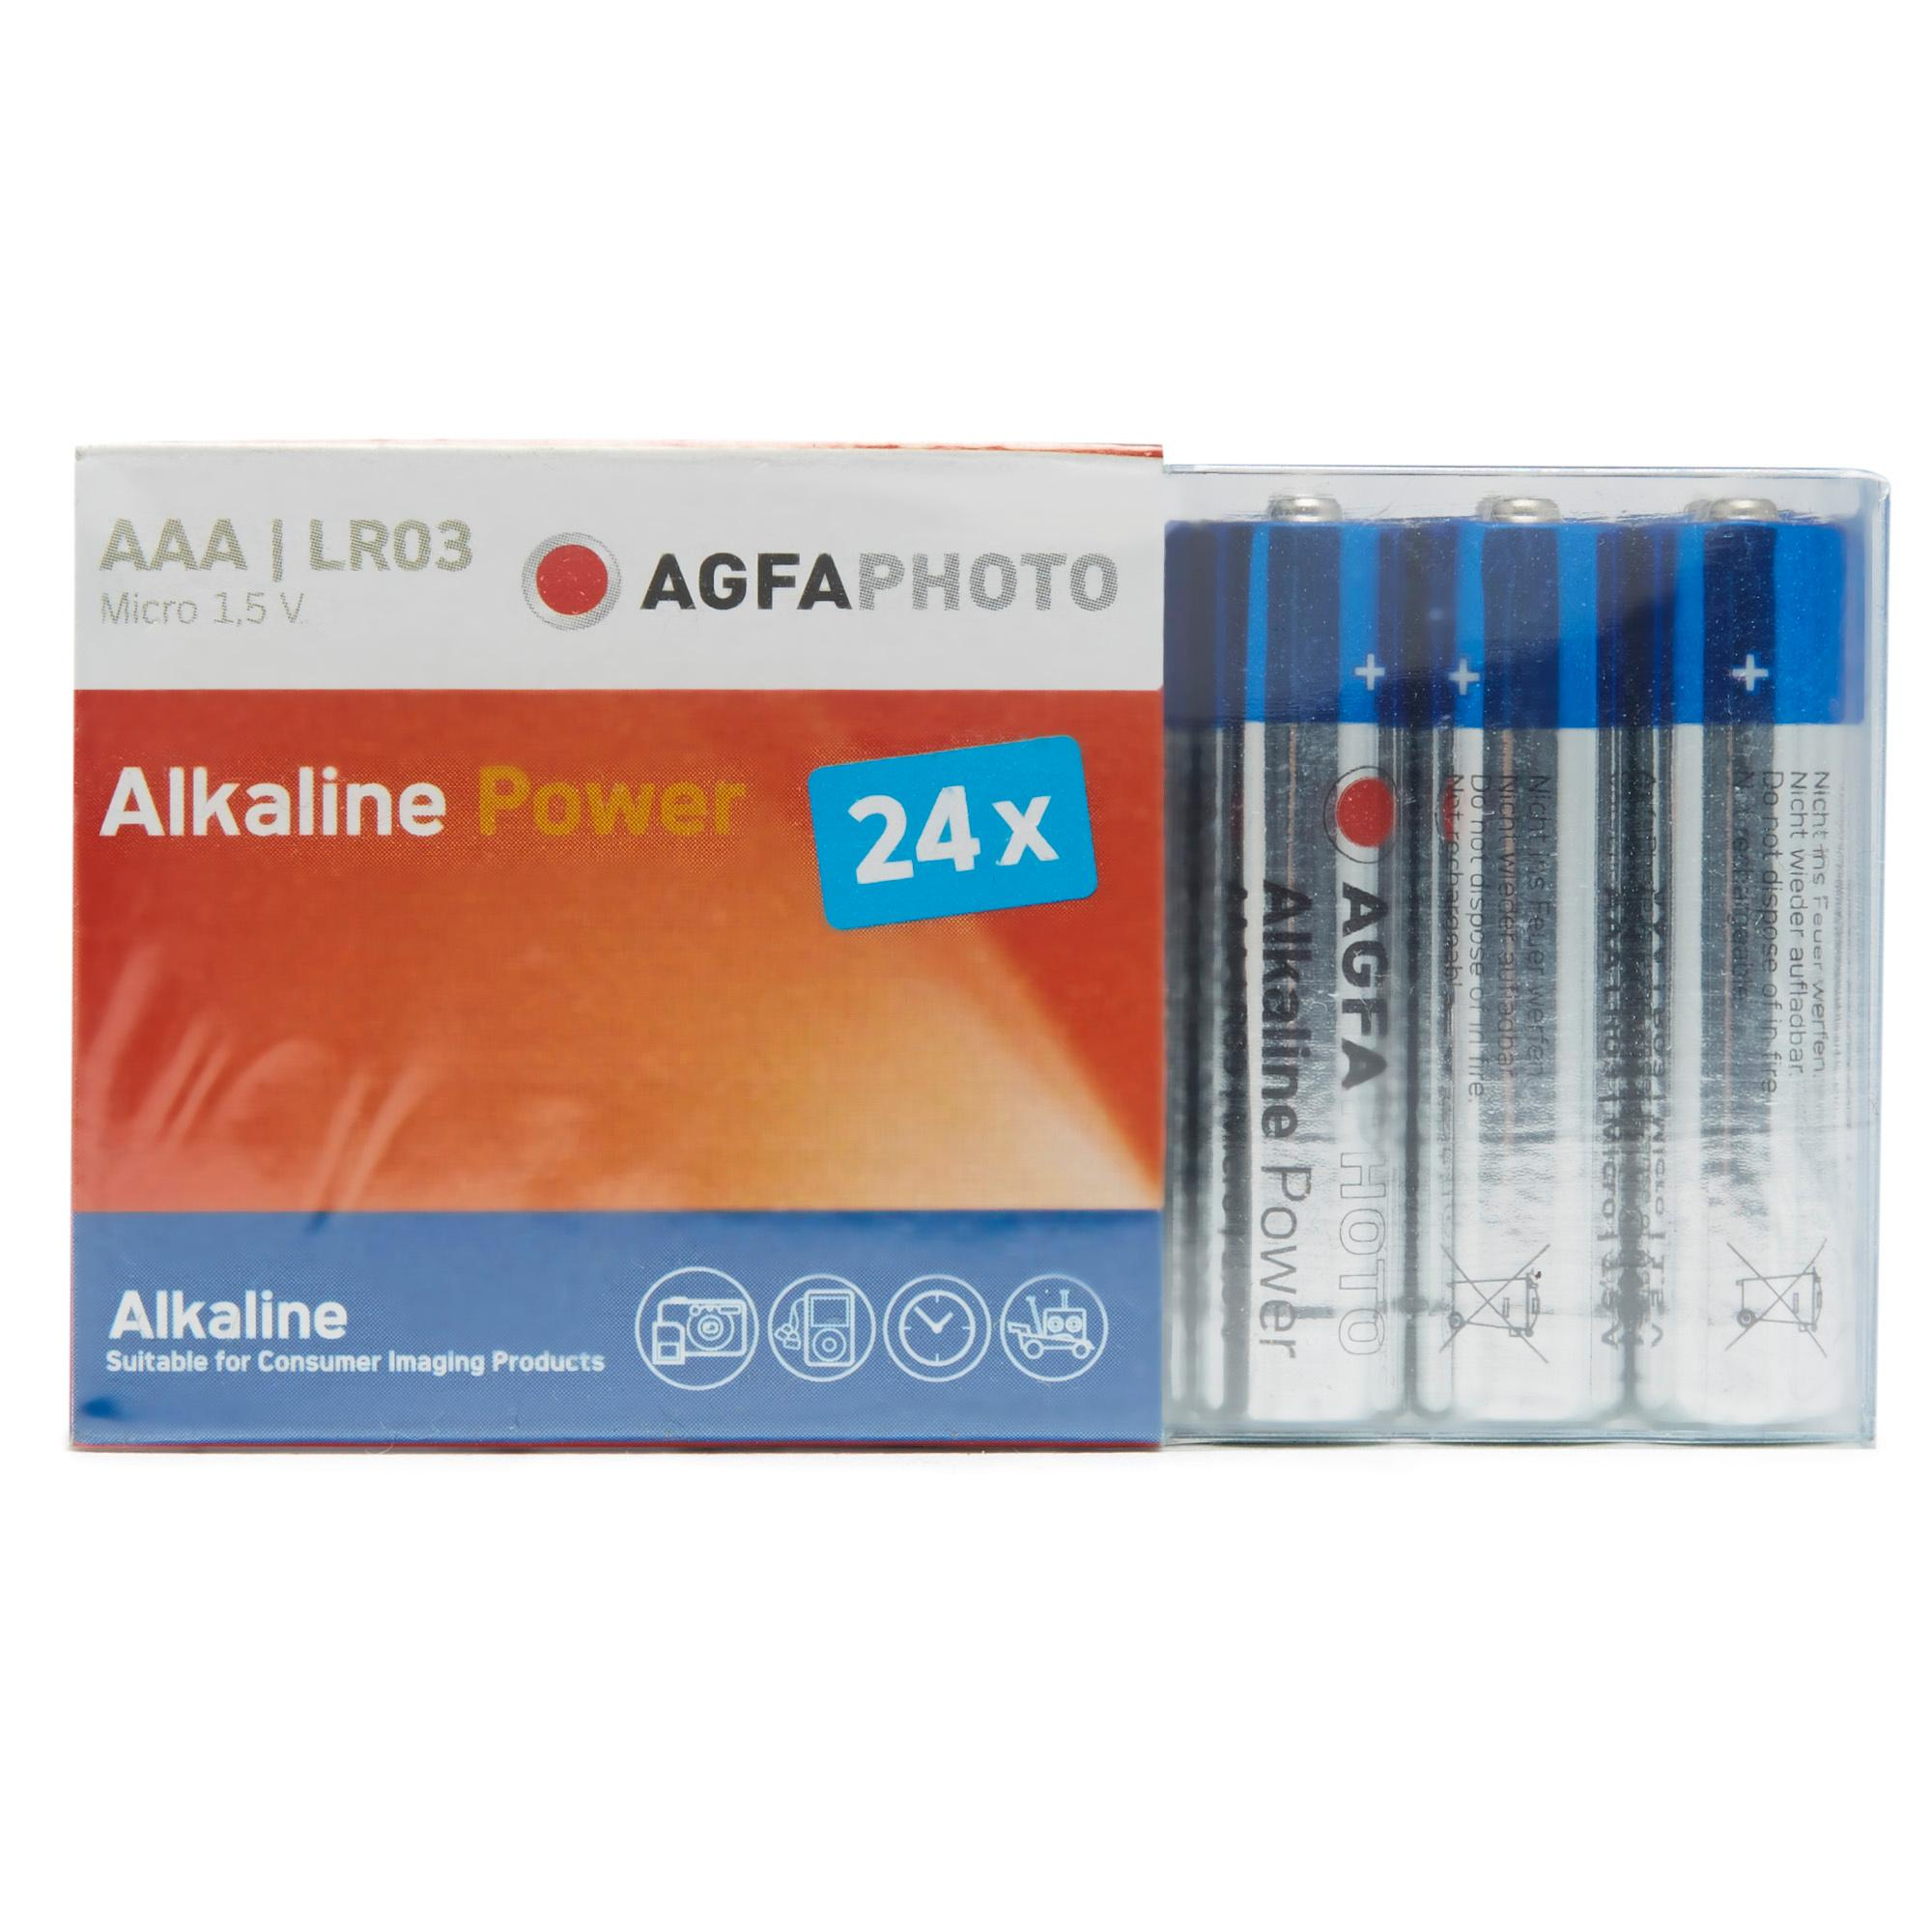 Image of Agfa Alkaline Power AAA LR03 Batteries 24 Pack